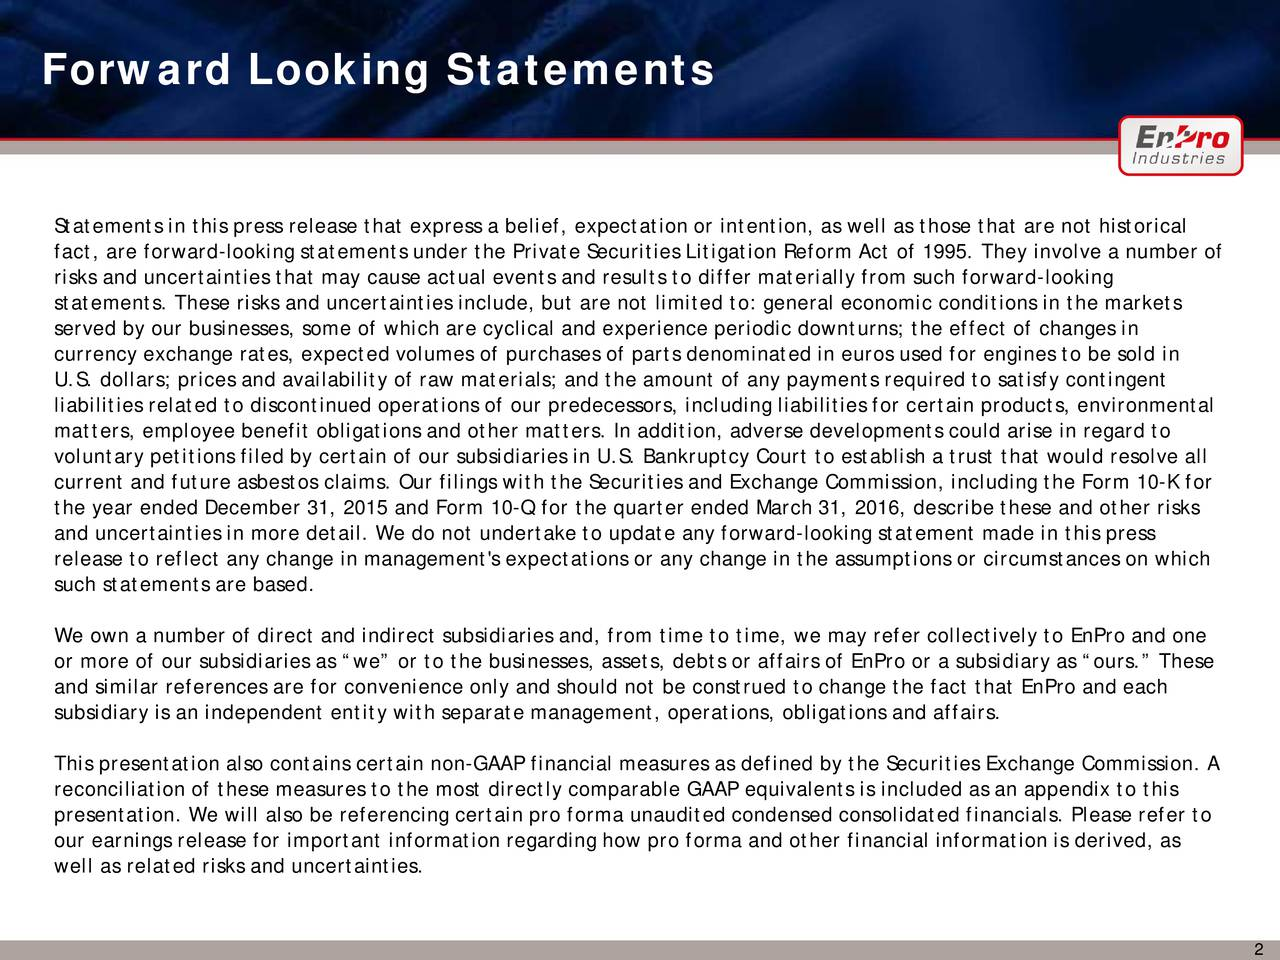 Statements in this press release that express a belief, expectation or intention, as well as those that are not historical fact, are forward-looking statements under the Private Securities Litigation Reform Act of 1995. They involve a number of risks and uncertainties that may cause actual events and results to differ materially from such forward-looking statements. These risks and uncertainties include, but are not limited to: general economic conditions in the markets served by our businesses, some of which are cyclical and experience periodic downturns; the effect of changes in currency exchange rates, expected volumes of purchases of parts denominated in euros used for engines to be sold in U.S. dollars; prices and availability of raw materials; and the amount of any payments required to satisfy contingent liabilities related to discontinued operations of our predecessors, including liabilities for certain products, environmental matters, employee benefit obligations and other matters. In addition, adverse developments could arise in regard to voluntary petitions filed by certain of our subsidiaries in U.S. Bankruptcy Court to establish a trust that would resolve all current and future asbestos claims. Our filings with the Securities and Exchange Commission, including the Form 10-K for the year ended December 31, 2015 and Form 10-Q for the quarter ended March 31, 2016, describe these and other risks and uncertainties in more detail. We do not undertake to update any forward-looking statement made in this press release to reflect any change in management's expectations or any change in the assumptions or circumstances on which such statements are based. We own a number of direct and indirect subsidiaries and, from time to time, we may refer collectively toEnPro and one or more of our subsidiaries as we or to the businesses, assets, debts or affairs ofEnPro or a subsidiary as ours. These and similar references are for convenience only and should not be construed t